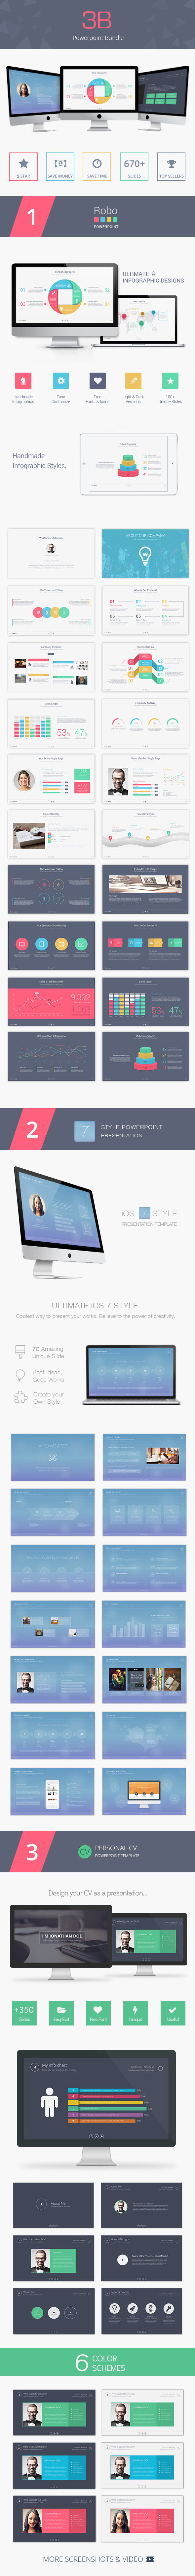 3B Powerpoint Bundle - PowerPoint Templates Presentation Templates